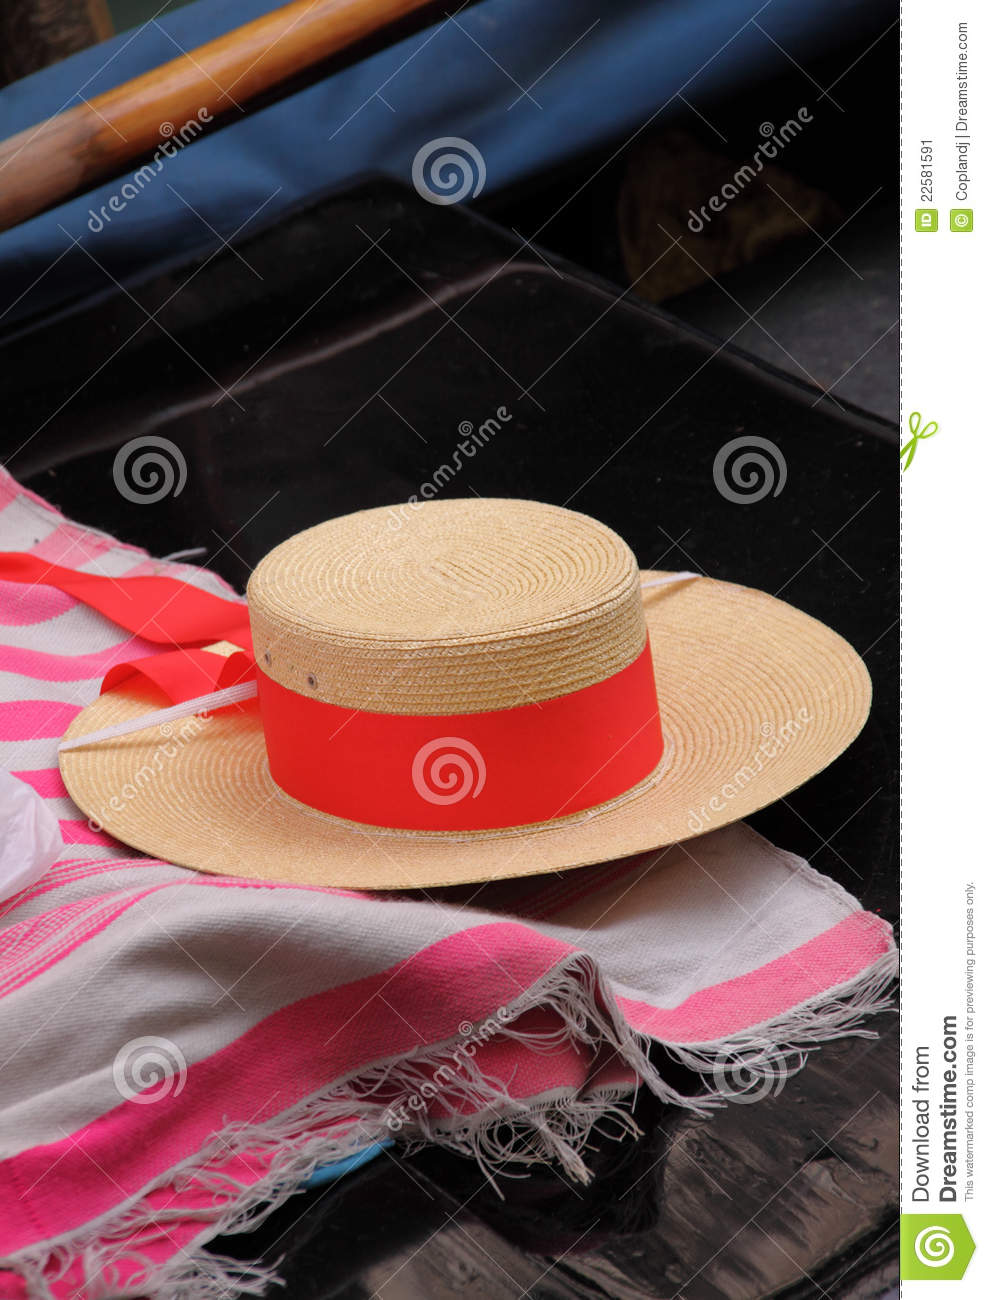 Venice Italy Straw Hat In Gondola Stock Image - Image of seat ... 0ee4411d3